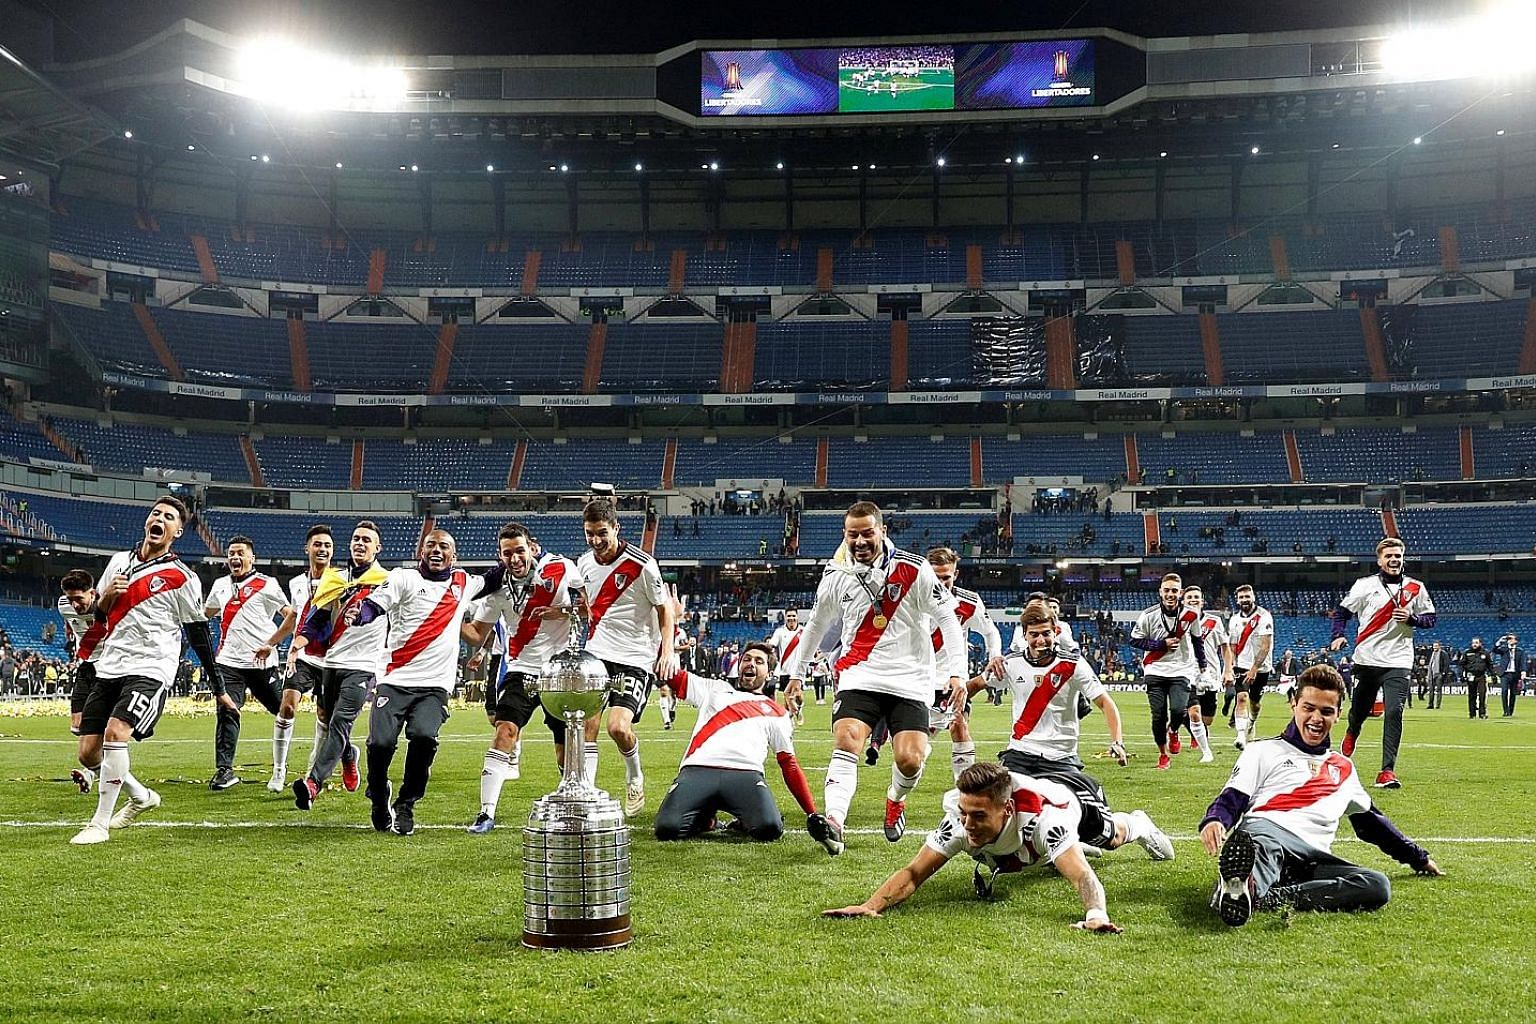 Ecstatic River Plate players celebrating after beating fierce rivals Boca Juniors 3-1 in the second leg of the Copa Libertadores final in Real Madrid's Santiago Bernabeu stadium. The second leg was moved from Argentina after a violent attack on Boca'